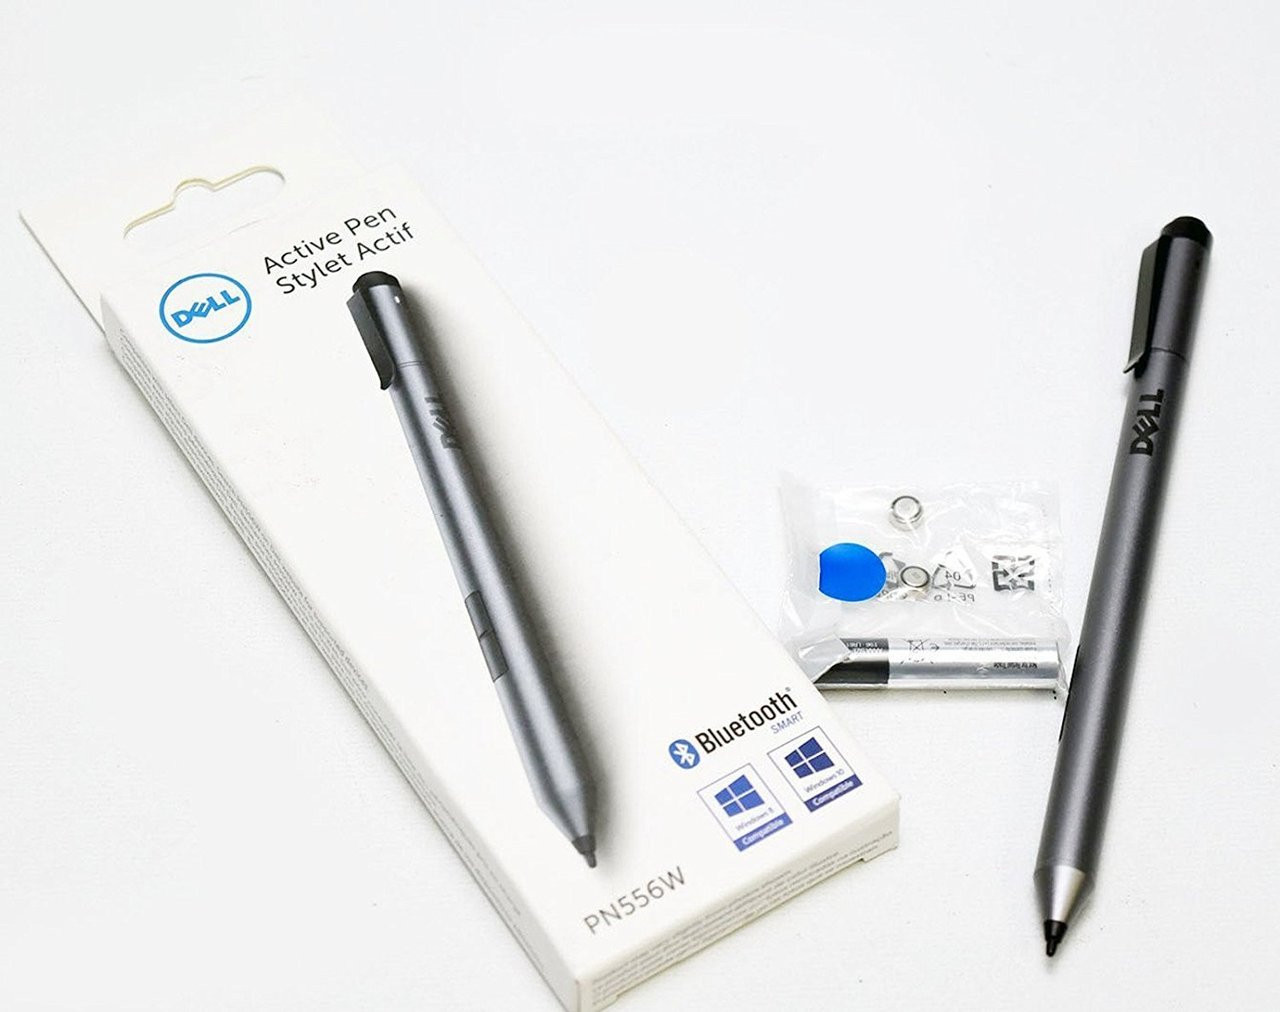 Dell Active Stylus Pen compatible with New Dell XPS 15 9570 touch XPS 9575  2-in-1 XPS 13 9365 2-in-1, Latitude 511 (5175), 11 (179), 7275, 10 Pro